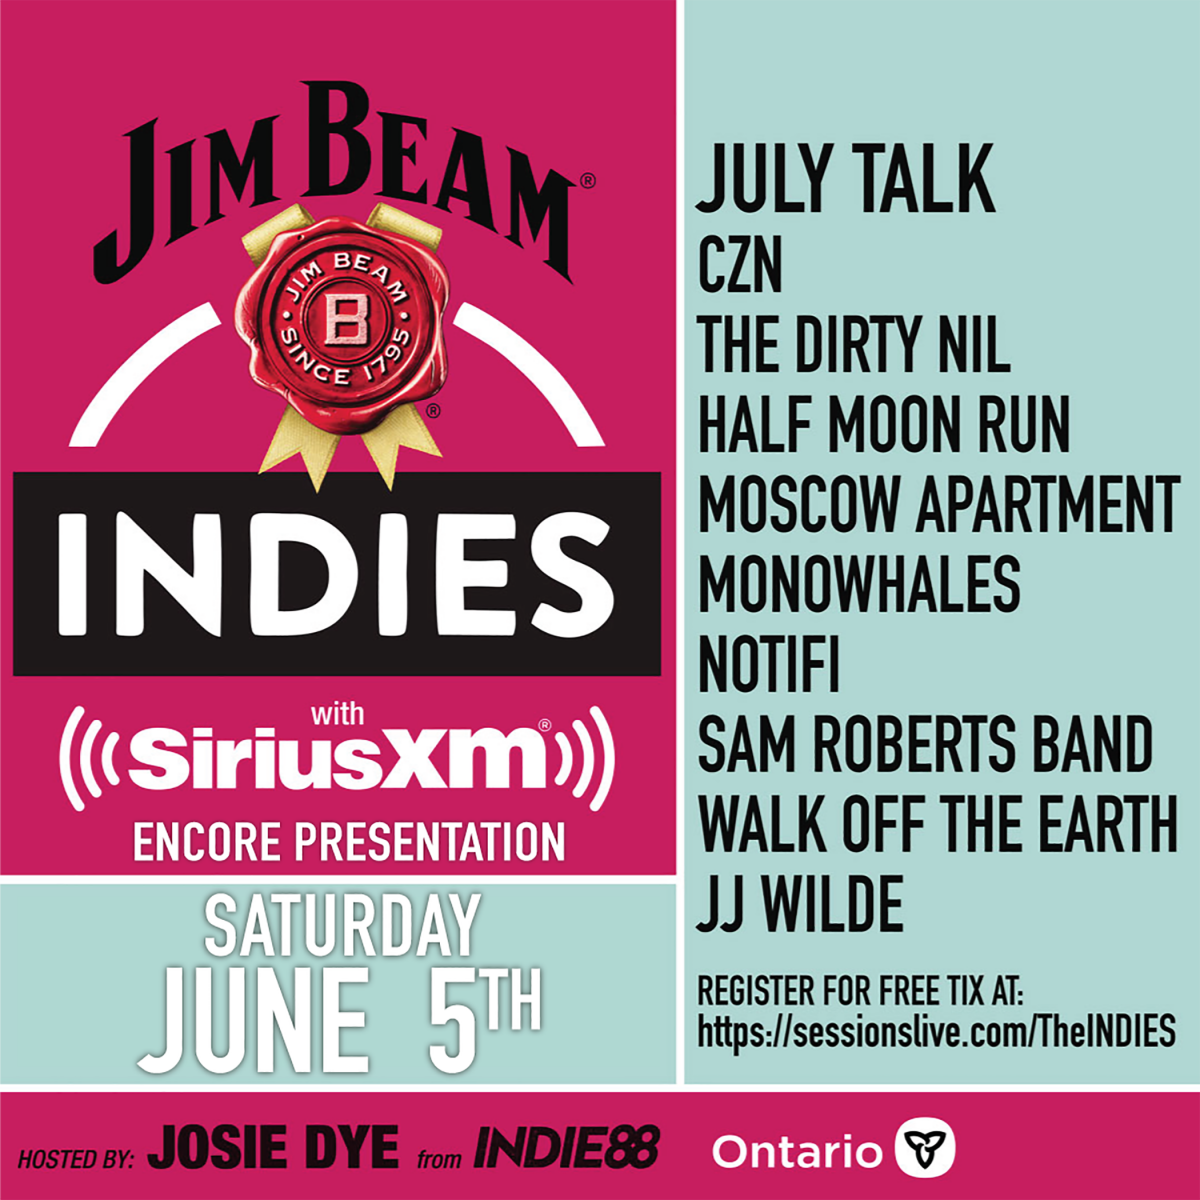 CMW Announces Winners of the 2021 Jim Beam®INDIE Awards